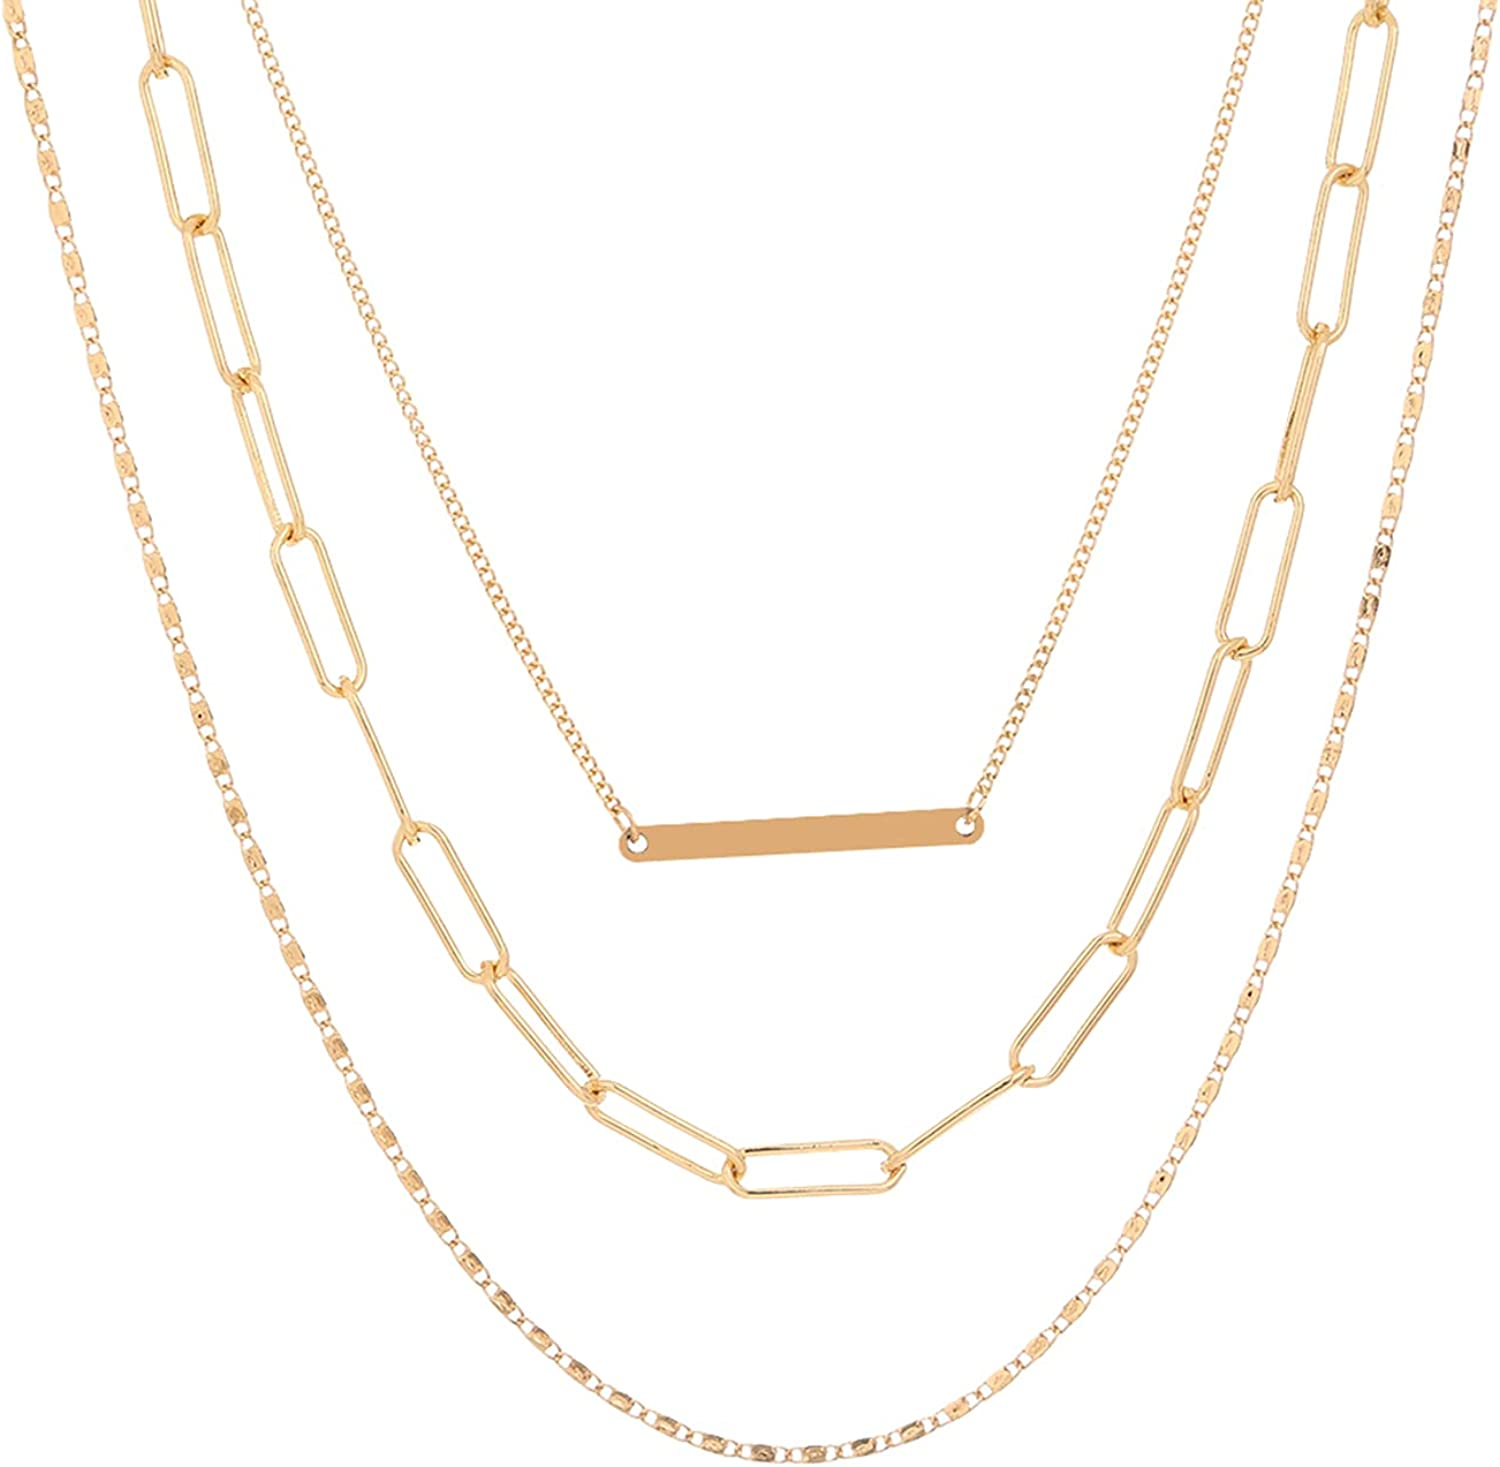 S SNUOY Gold Layered Necklaces Pendant Chokers for Women Dainty Pendant Necklace Fashion Jewelry for Girls